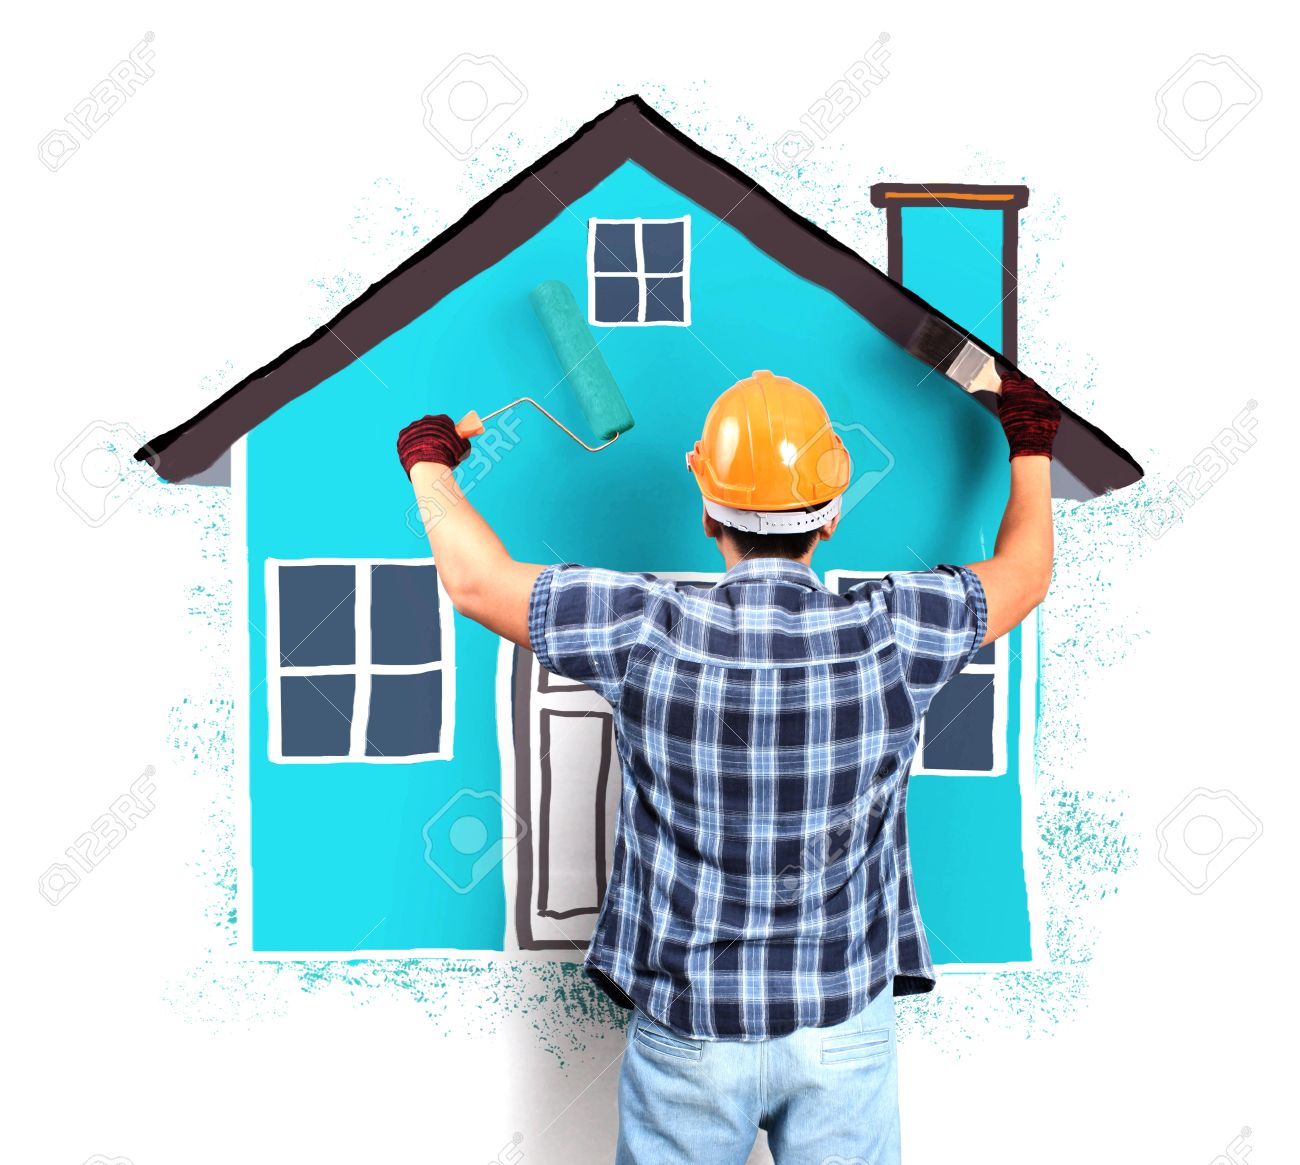 Paint House man decorating or painting house with a paint brush stock photo